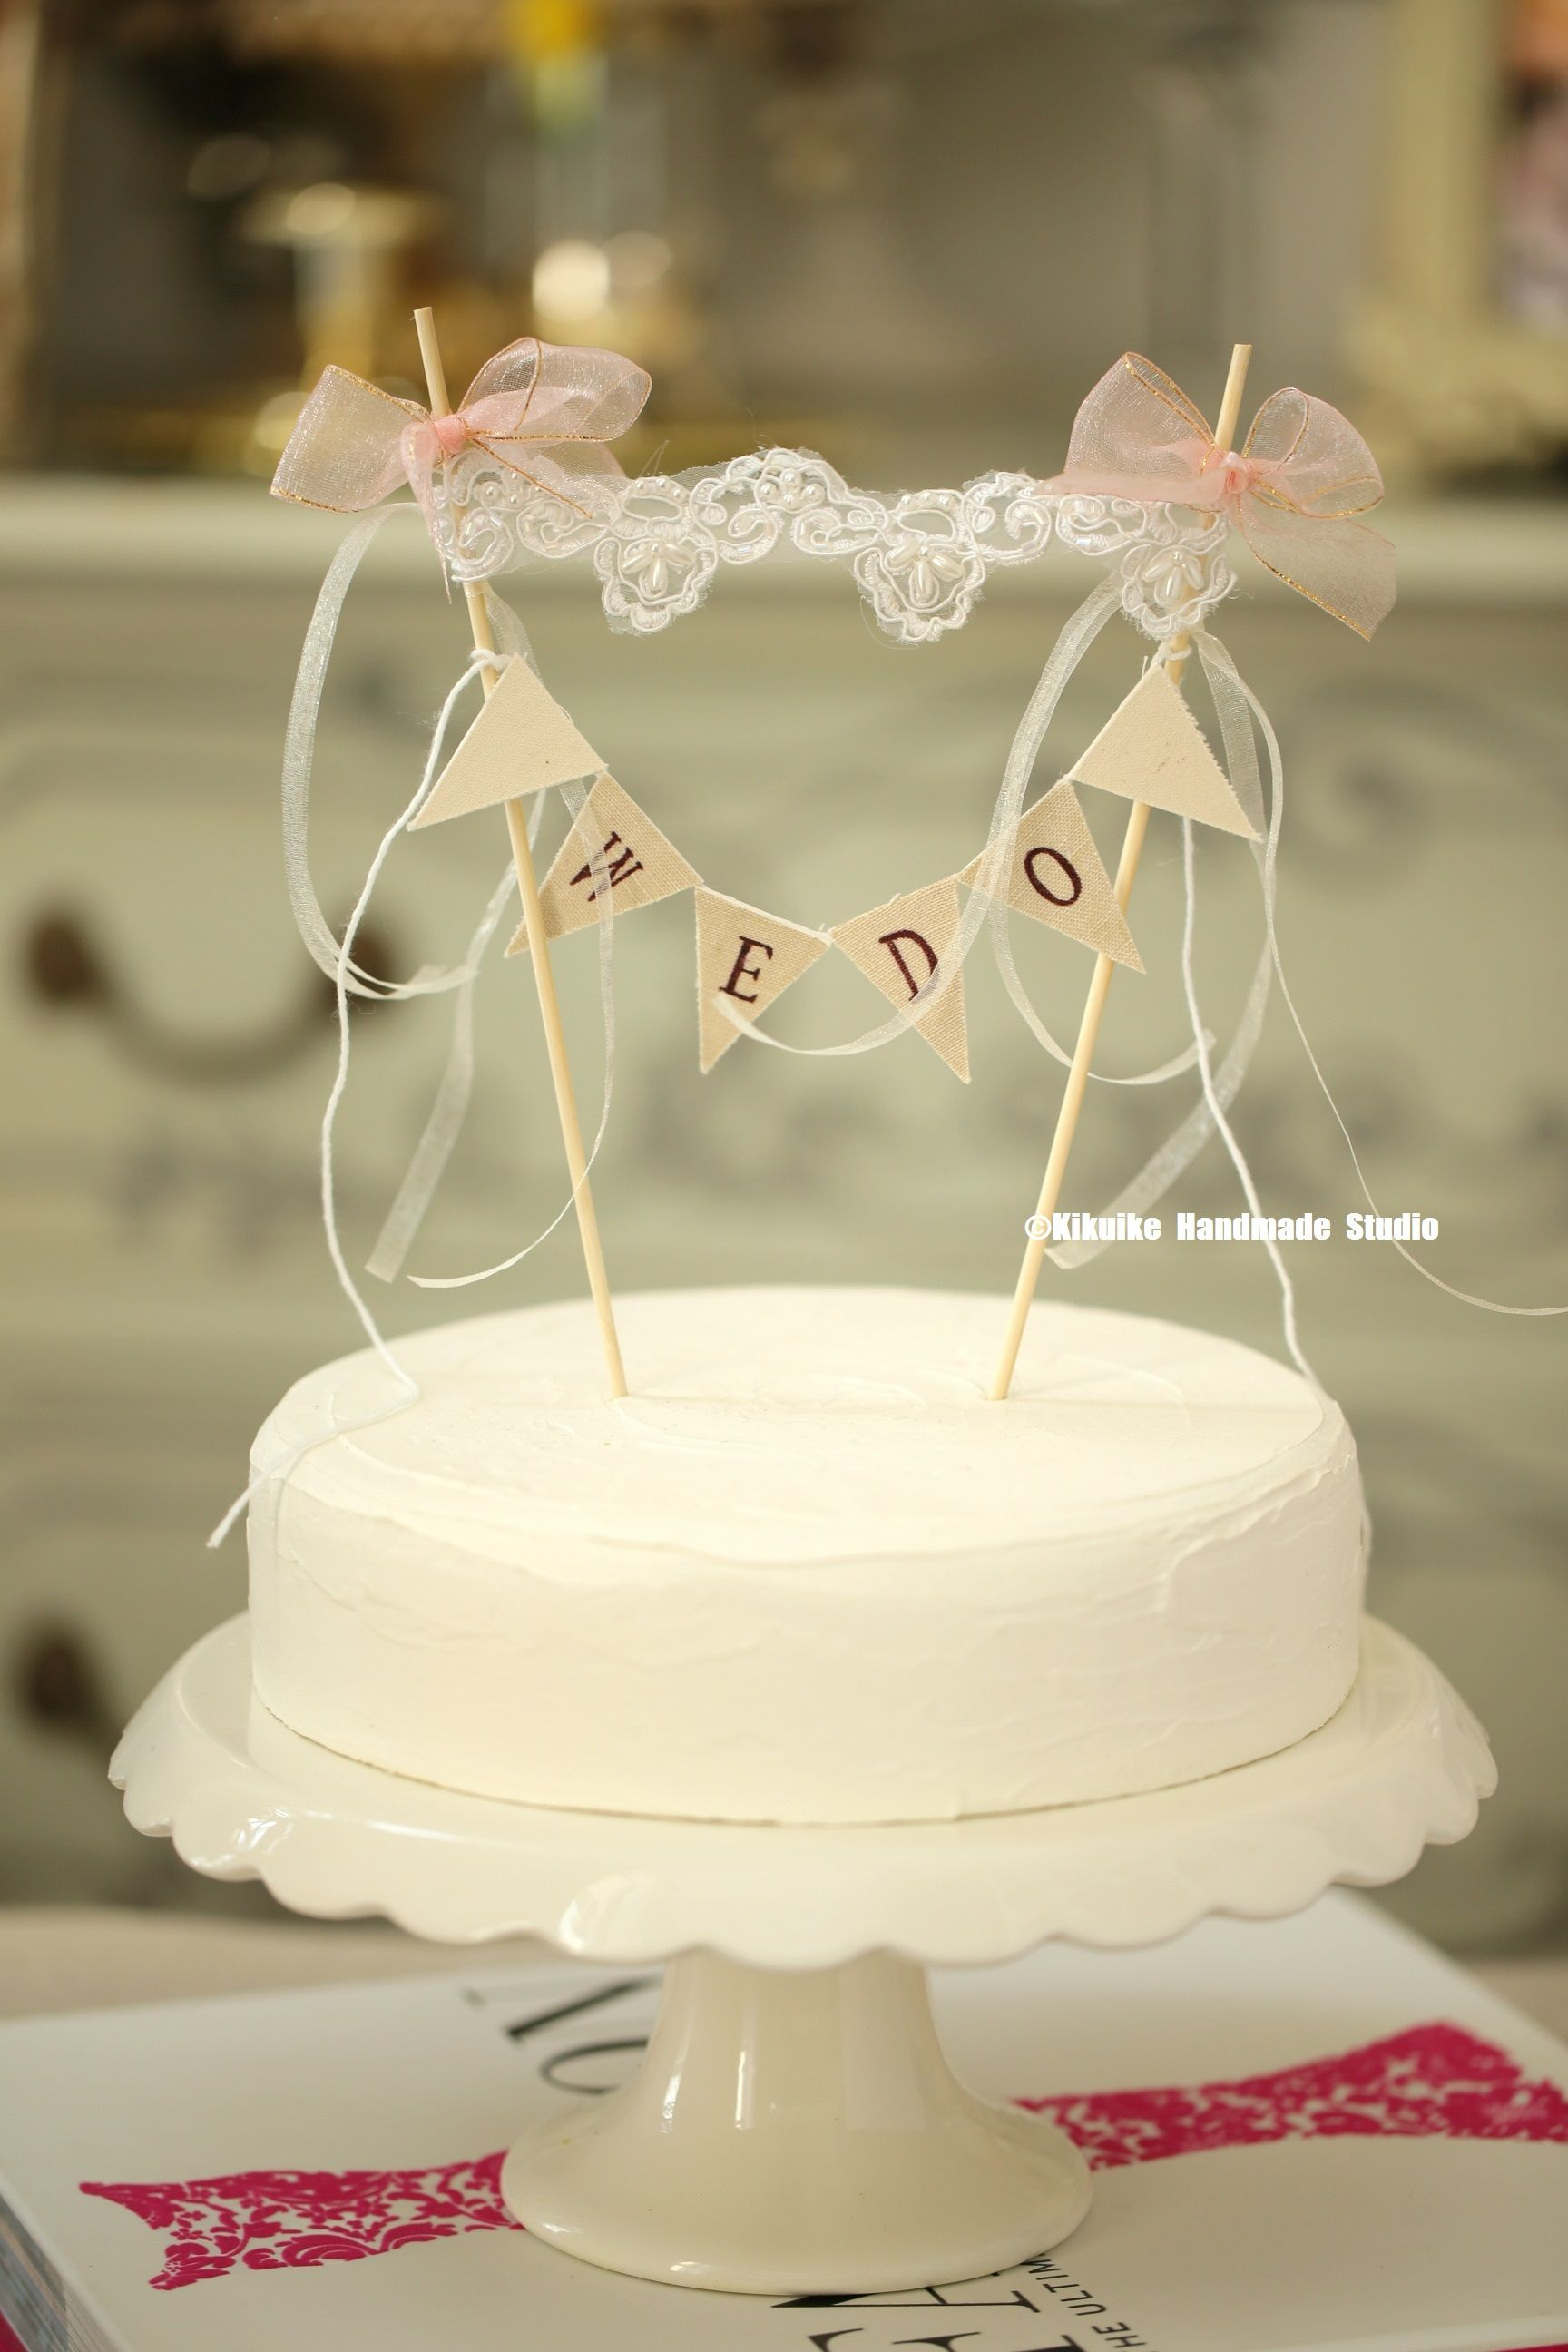 We Do Wedding Cake Banner,Lace cake topper,Rustic wedding Cake ...